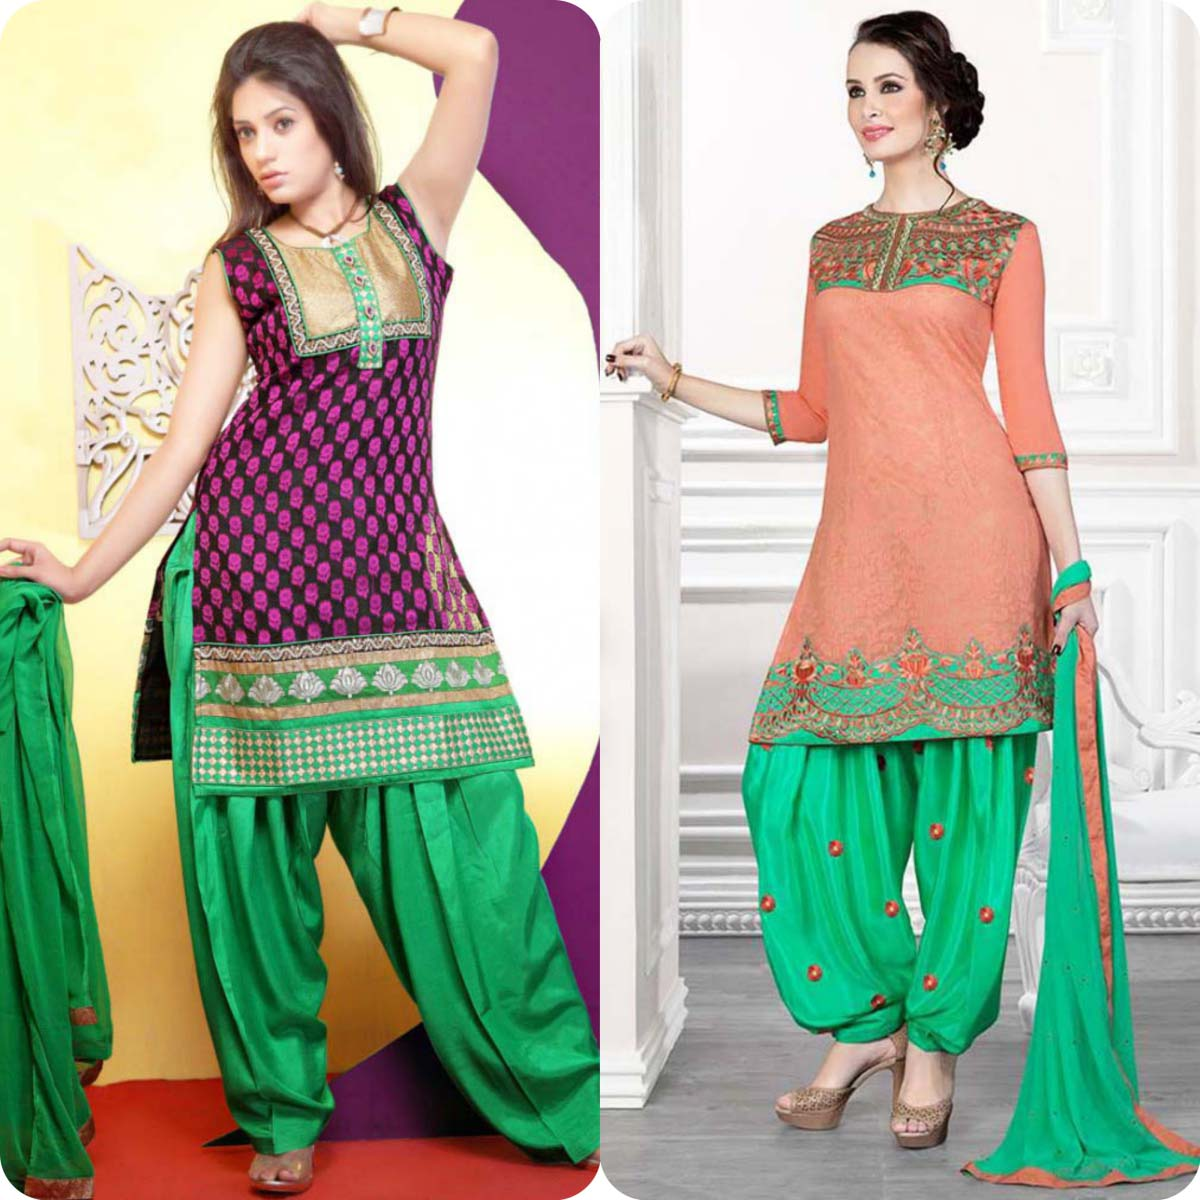 Latest Pakistani and Indian Patiala Shalwar Kameez Suits Designs (4)